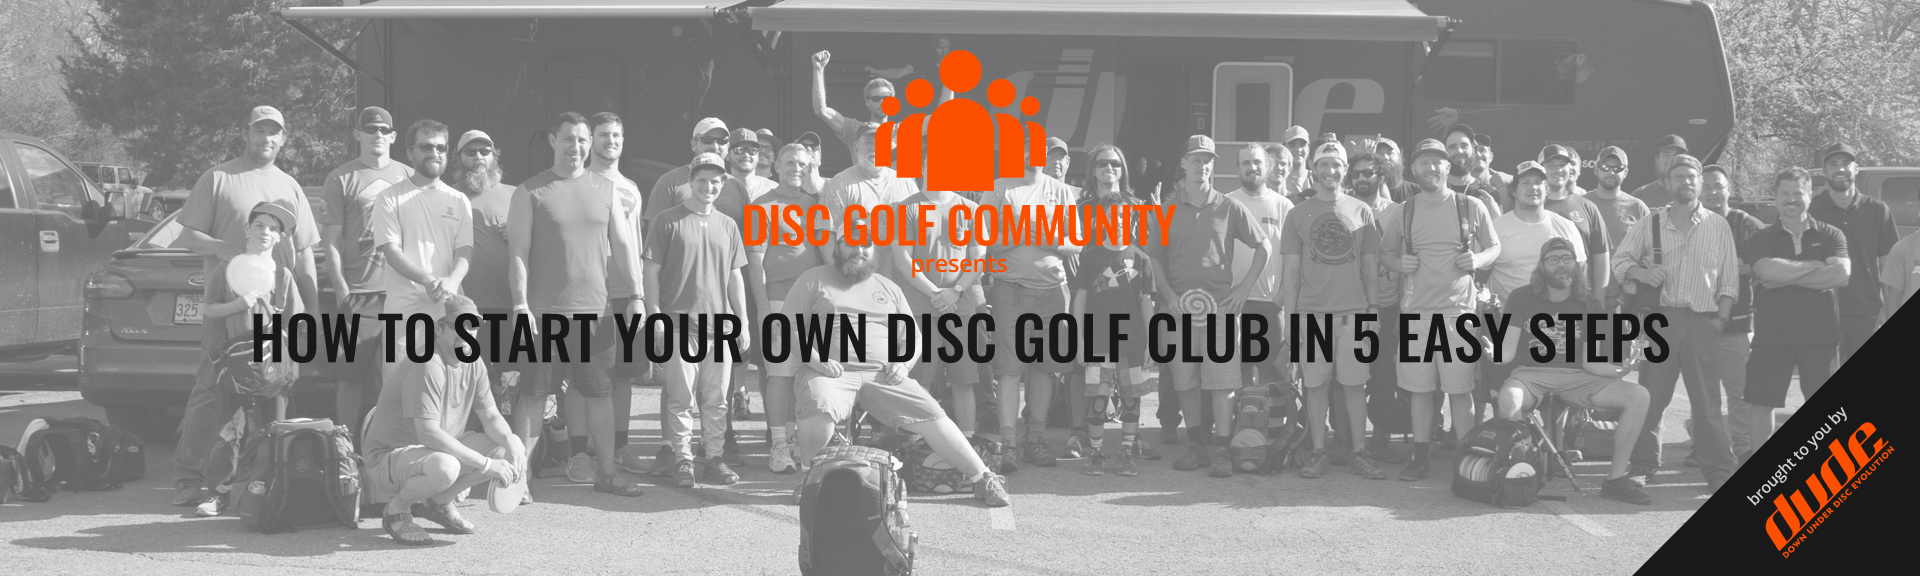 Dude Clothing In your community How to start your own disc golf club in 5 easy steps